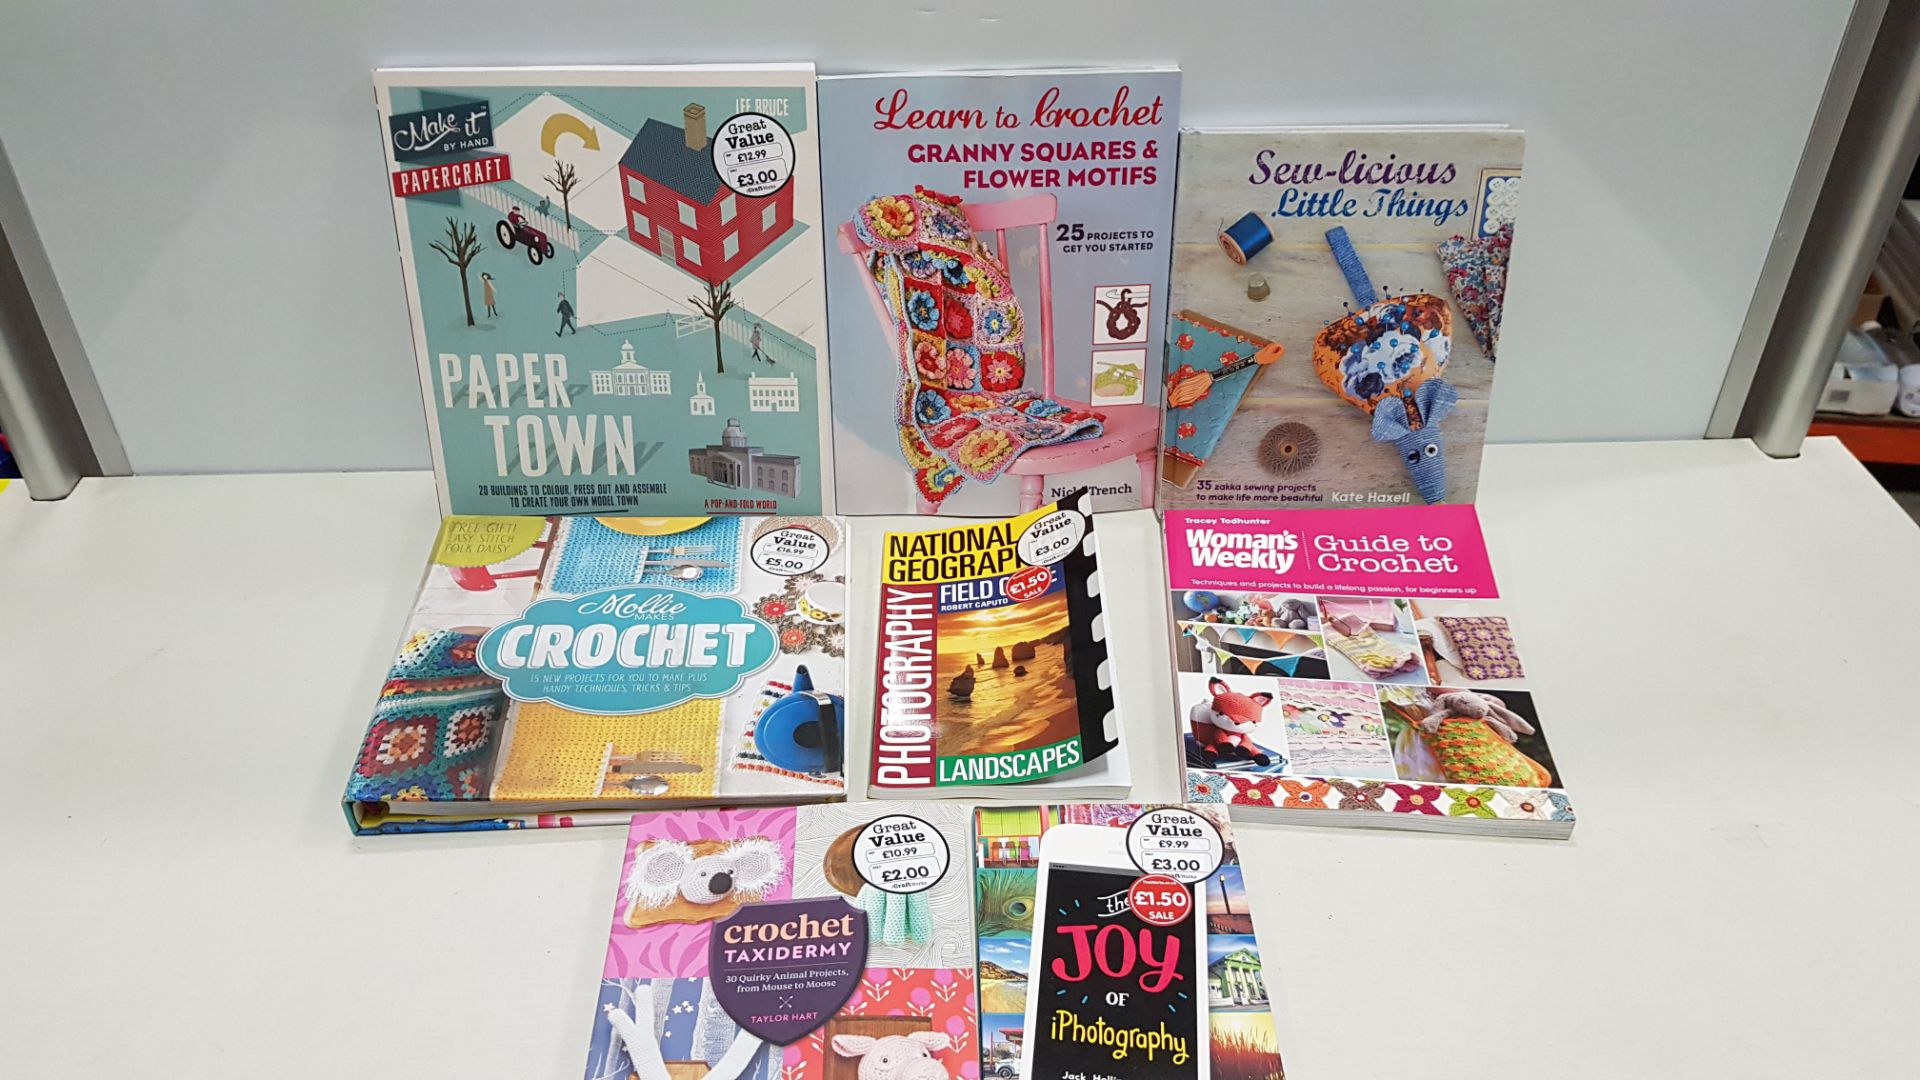 APPROX 200+ BRAND NEW ASSORTED BOOK LOT CONTAINING CROCHET MAKERS, PAPER CRAFT TOWN, GRANNY